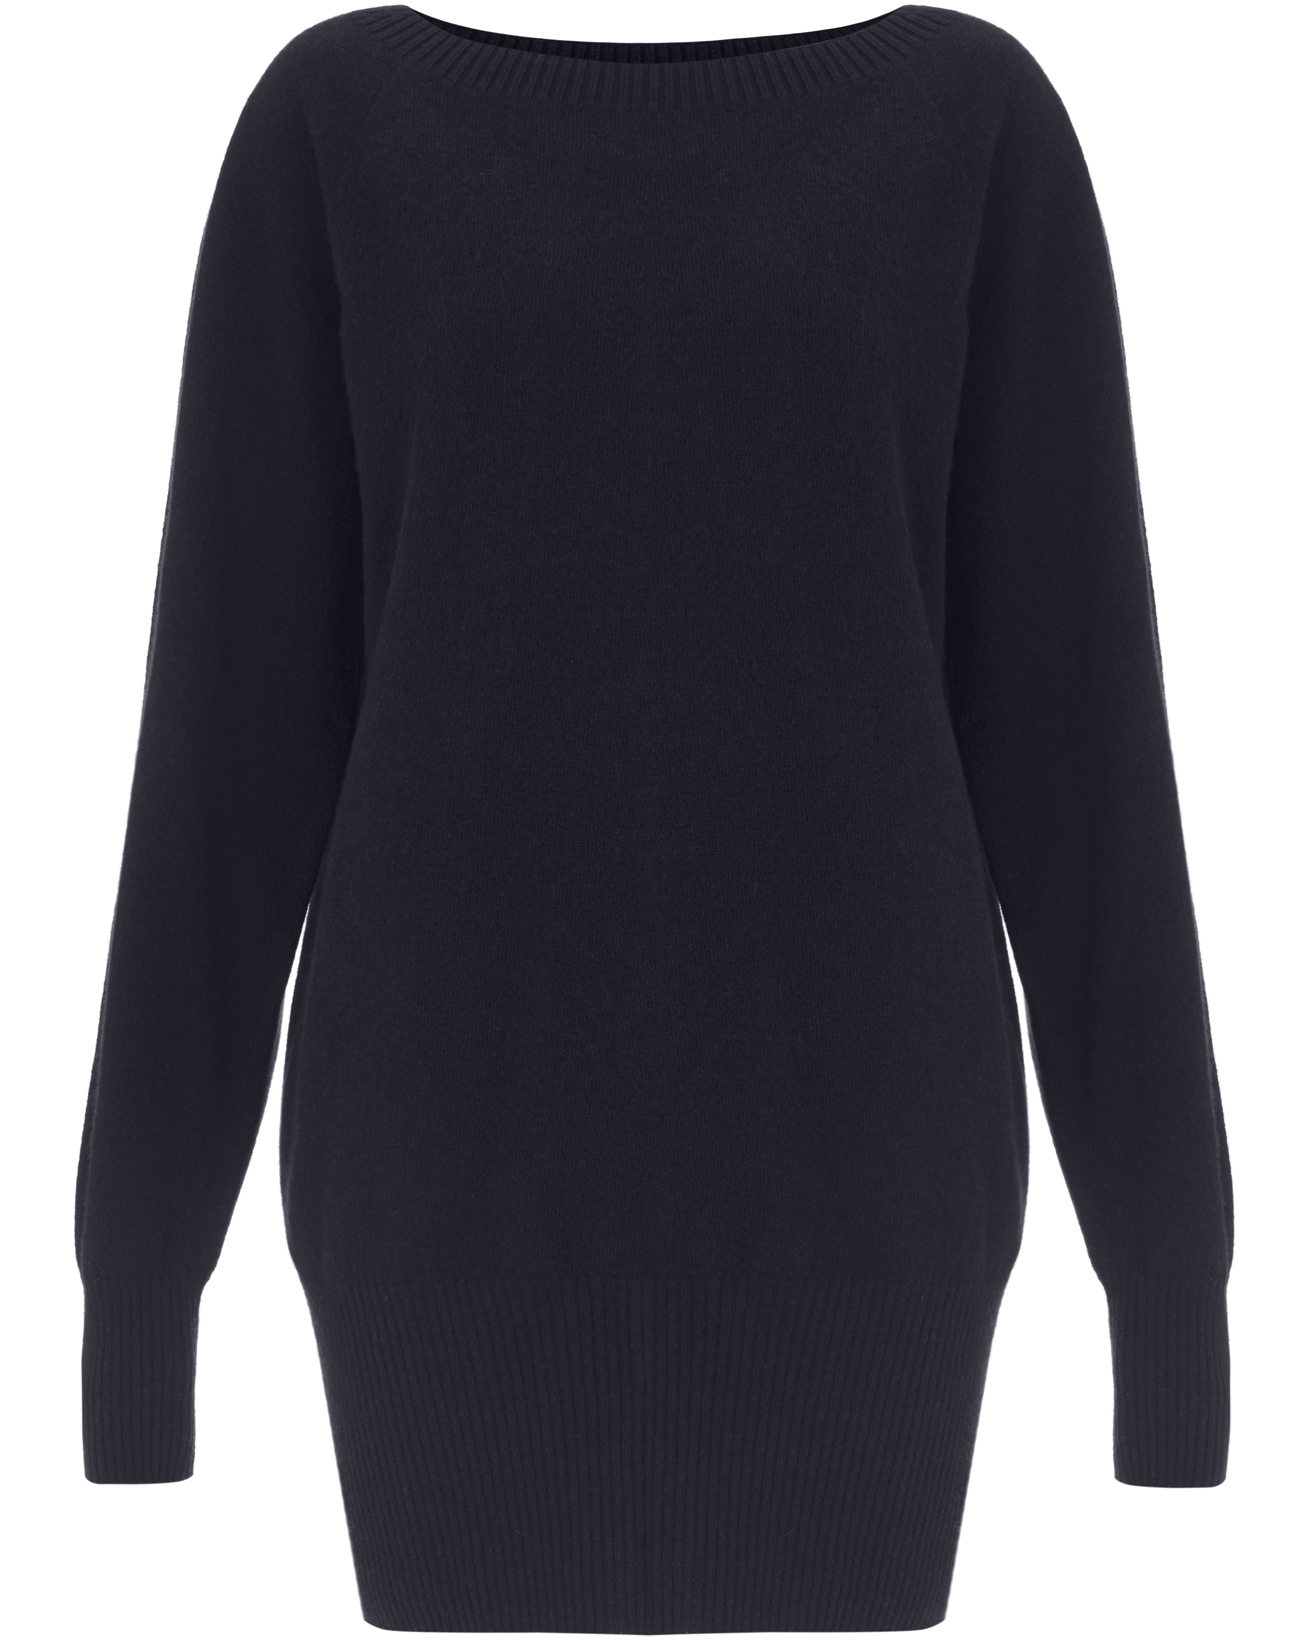 6344_supersoft_jumper_dark_navy_front_aw16.jpg